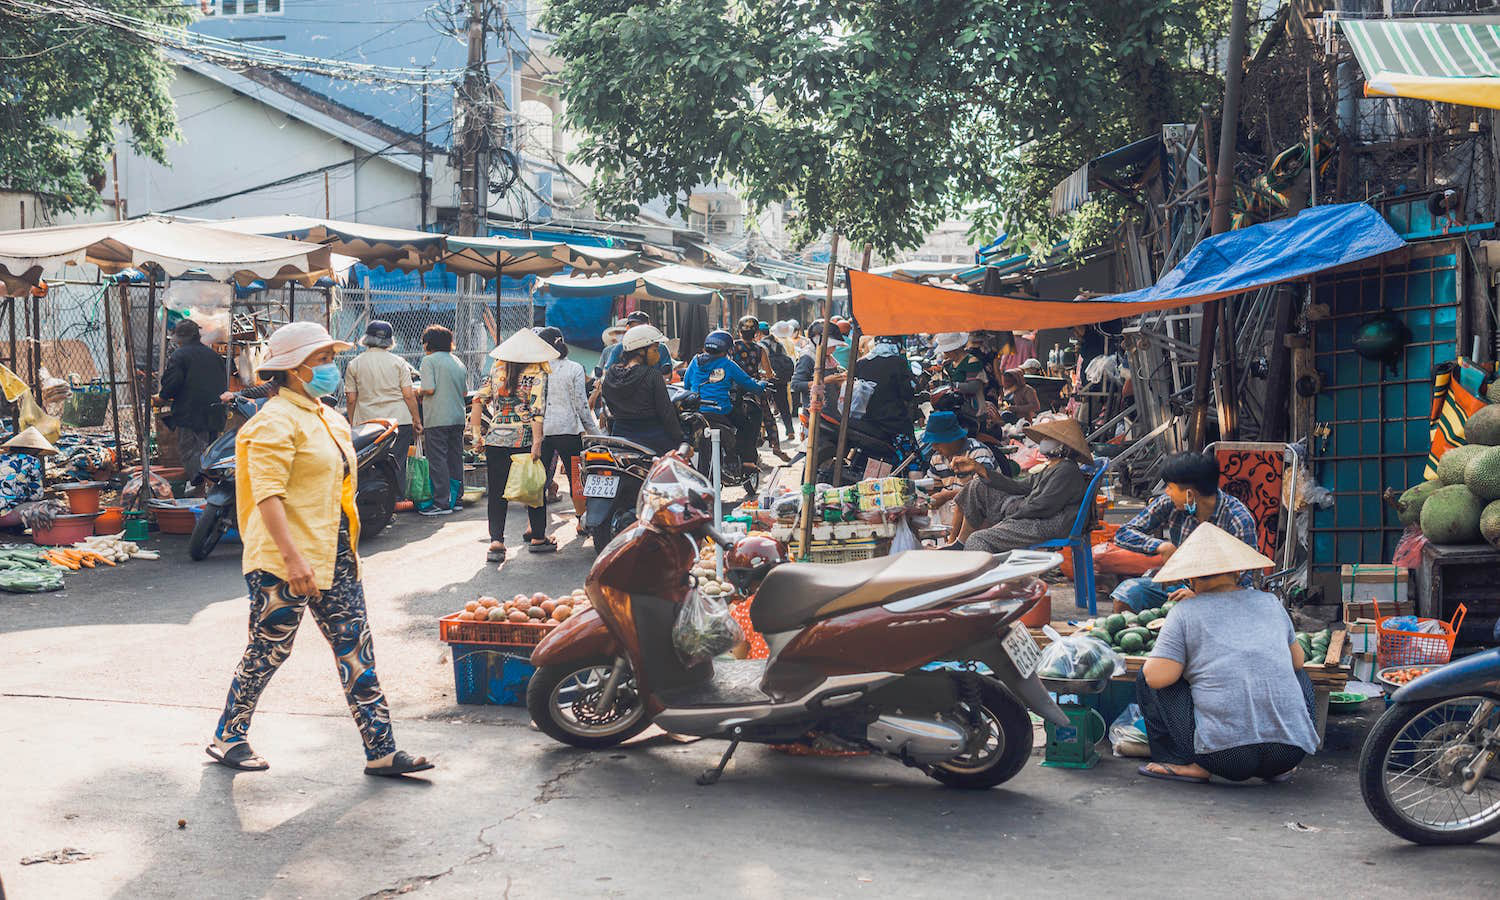 Closing wet markets in an attempt to prevent another COVID-19-like pandemic may have unintended consequences, experts warn.